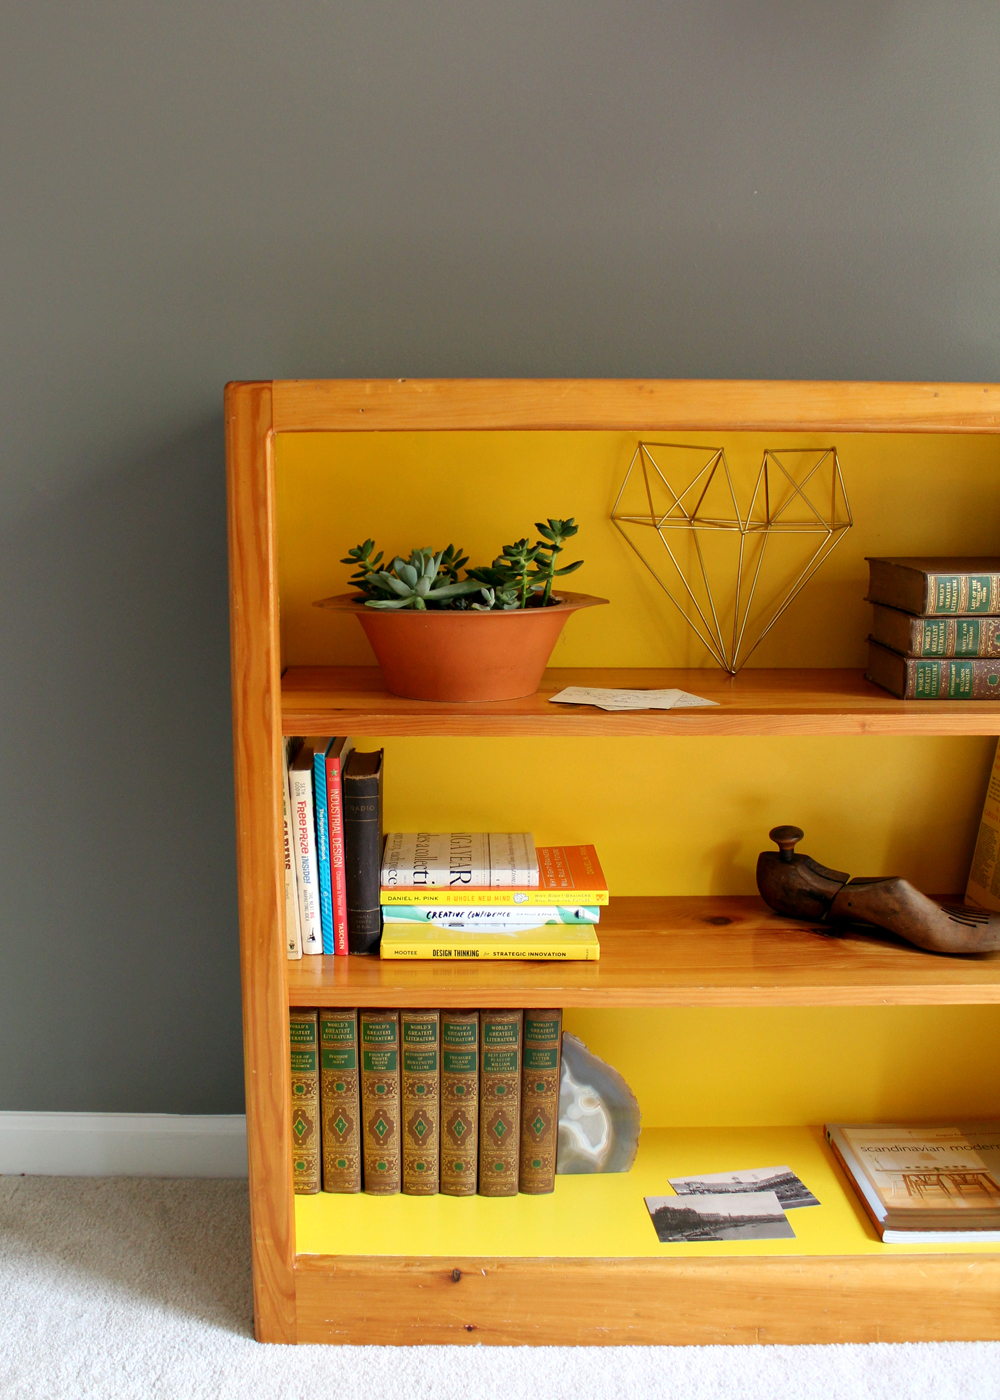 thrift store bookcase painted Sherwin Williams Cheerful. (walls painted SW Dovetail Gray) via Tag&Tibby